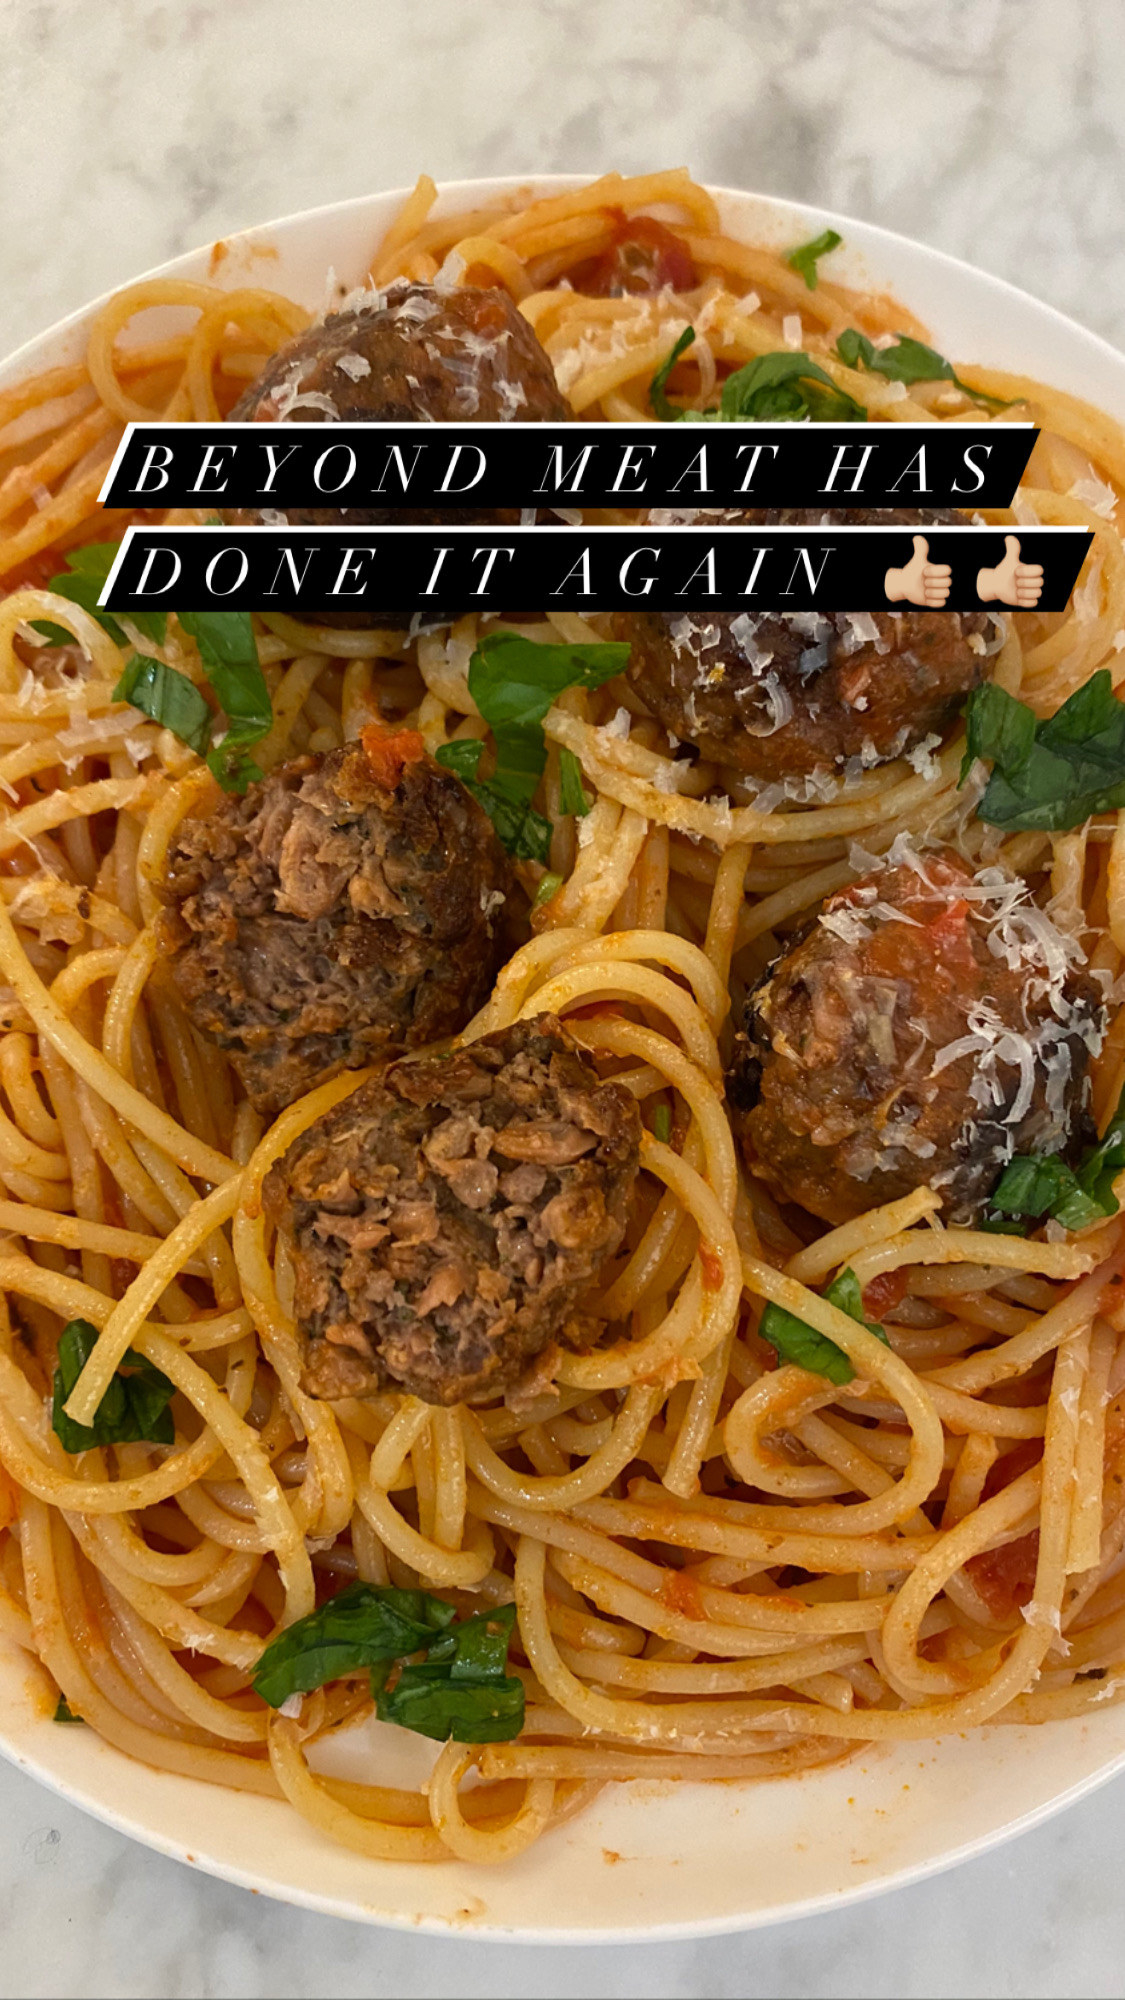 A plate of Beyond Meat meatballs over spaghetti.